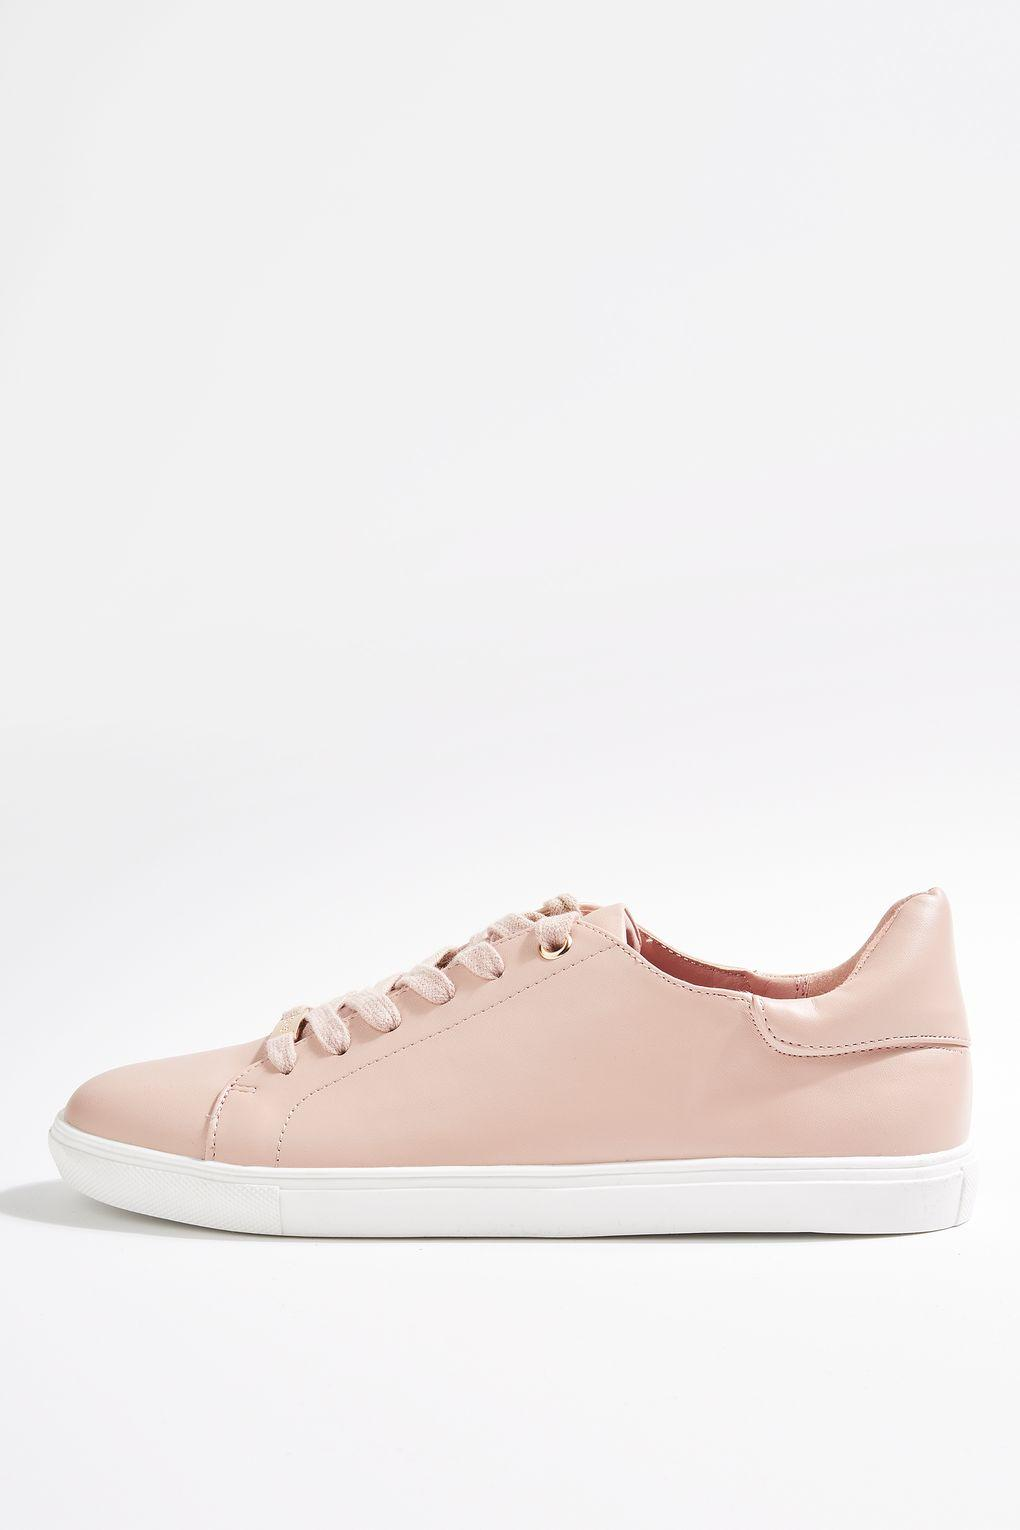 Topshop / CATSEYE2 Lace Up Trainers / Nude